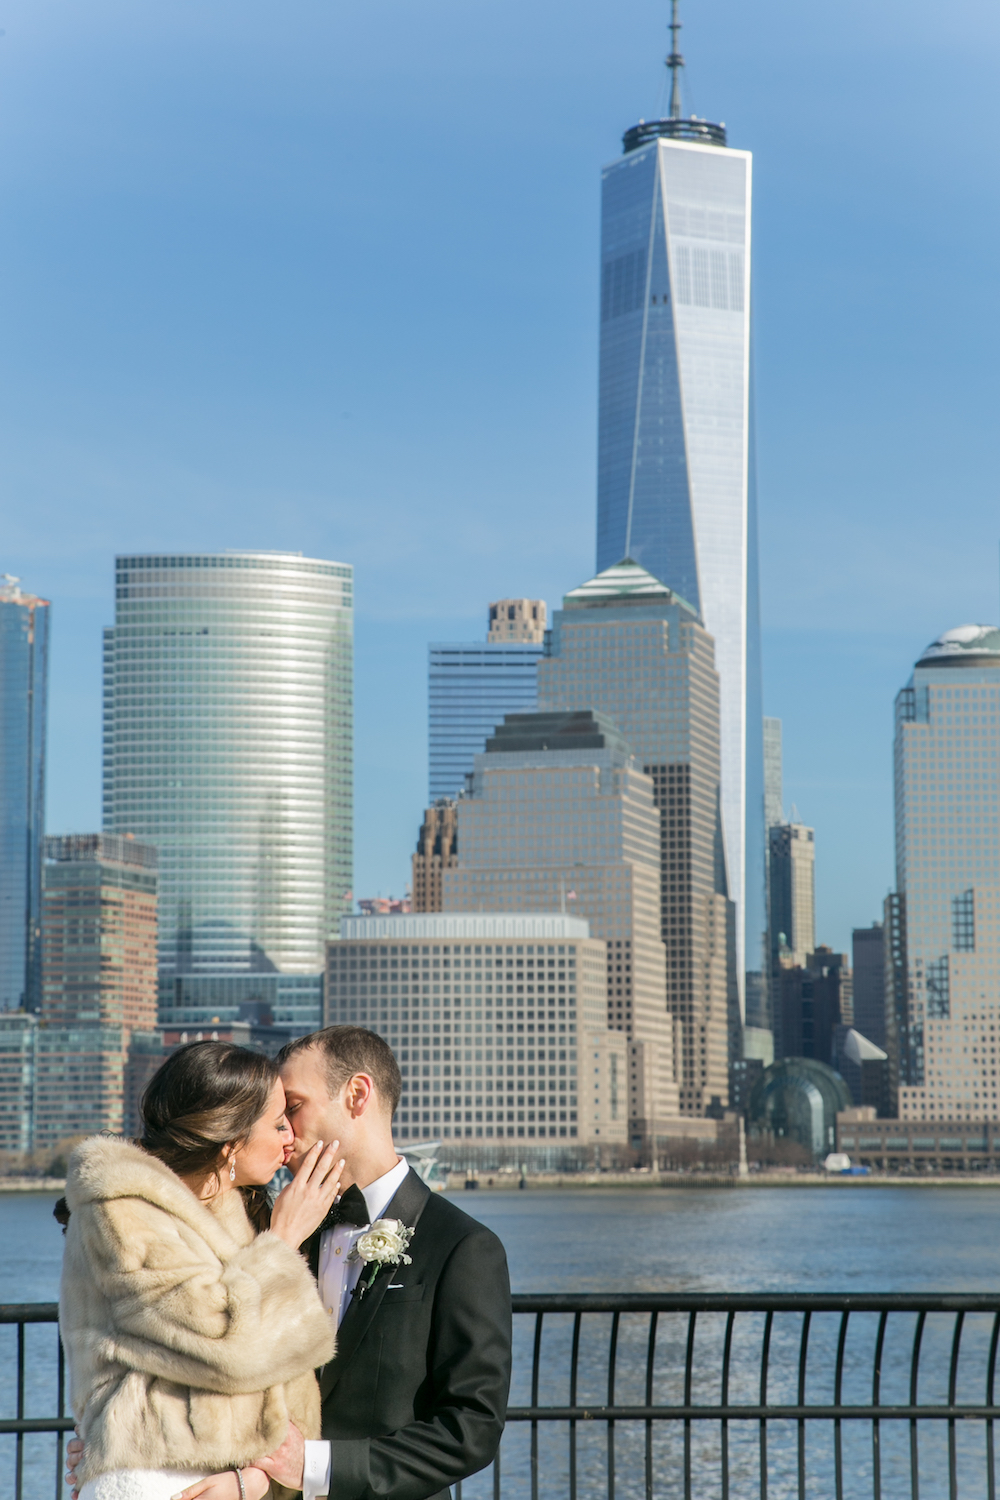 Jacqueline&Cory-standing-outside-by-nyc-skyline-wedding-photography-nj